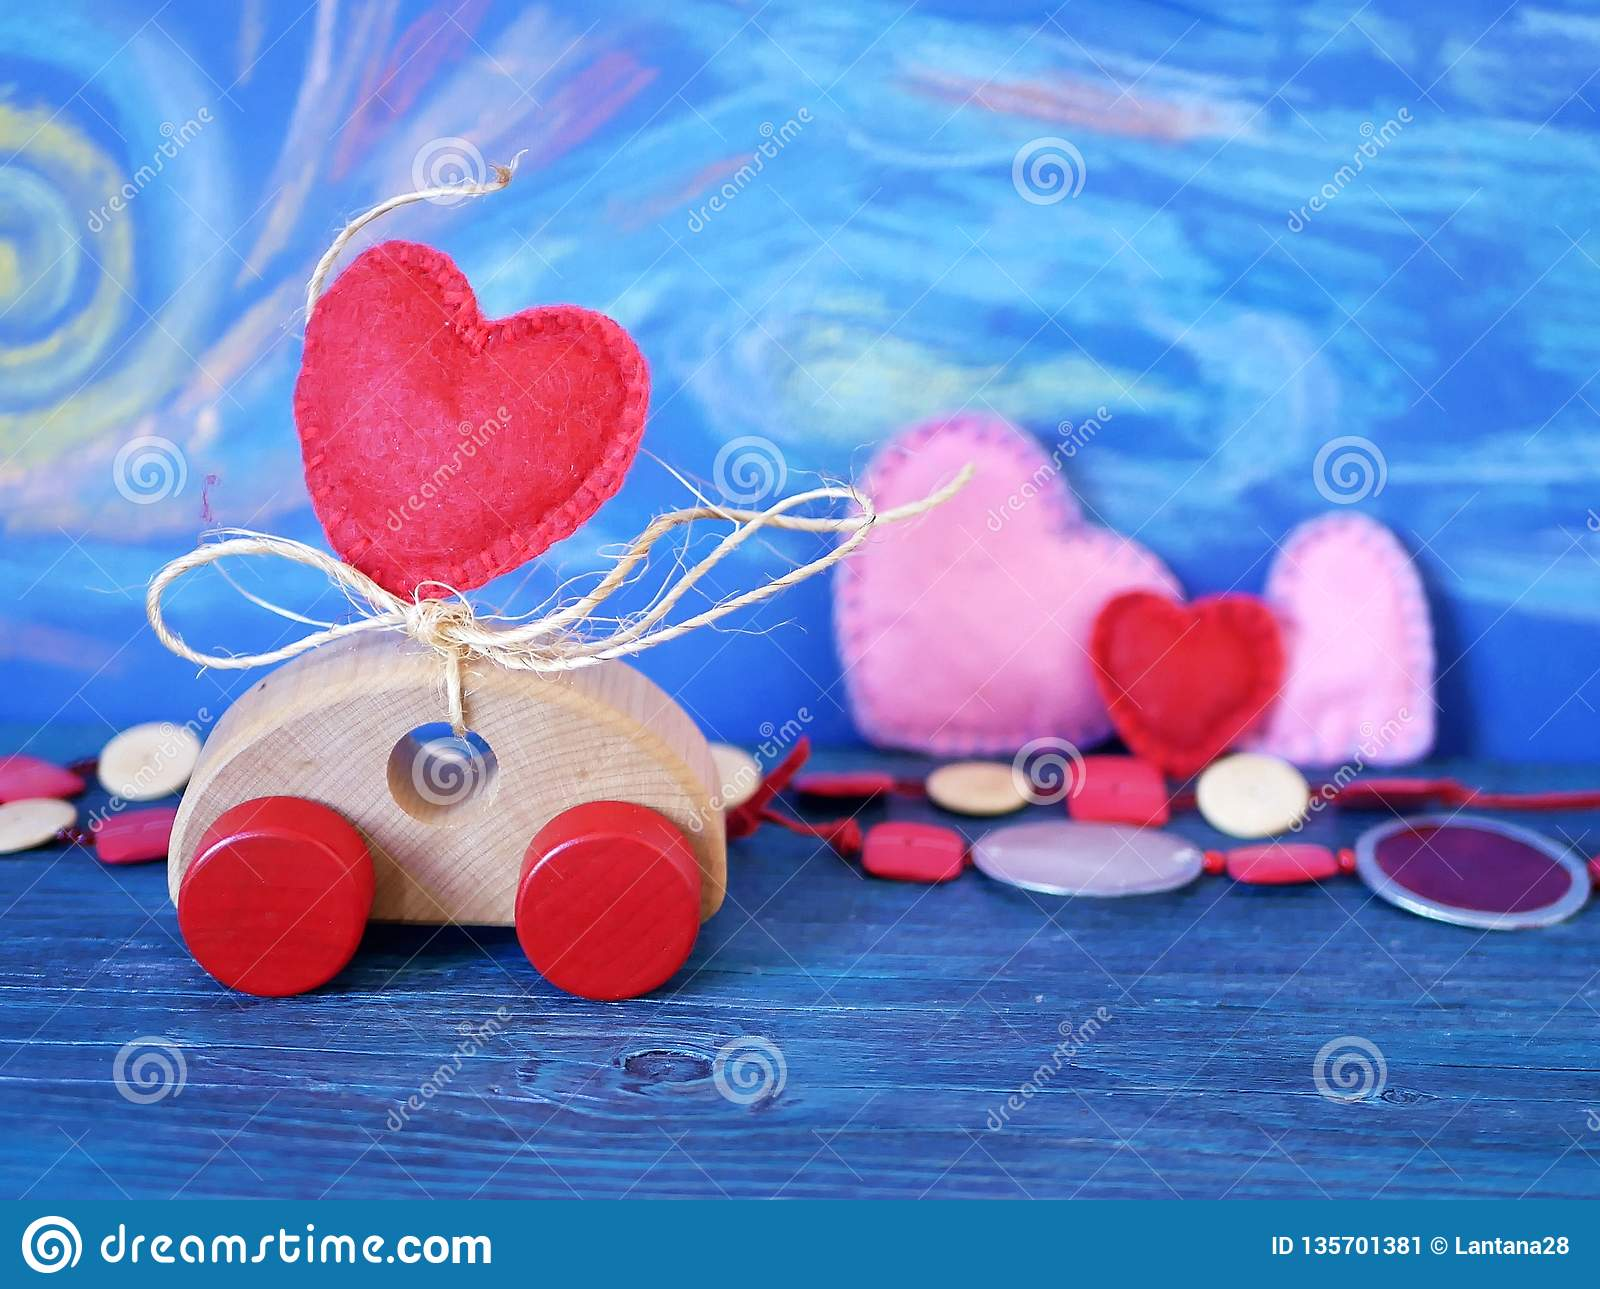 Decorative composition of a toy car and a heart made of felt on the background of pastel drawing, romantic decor on a blue wooden